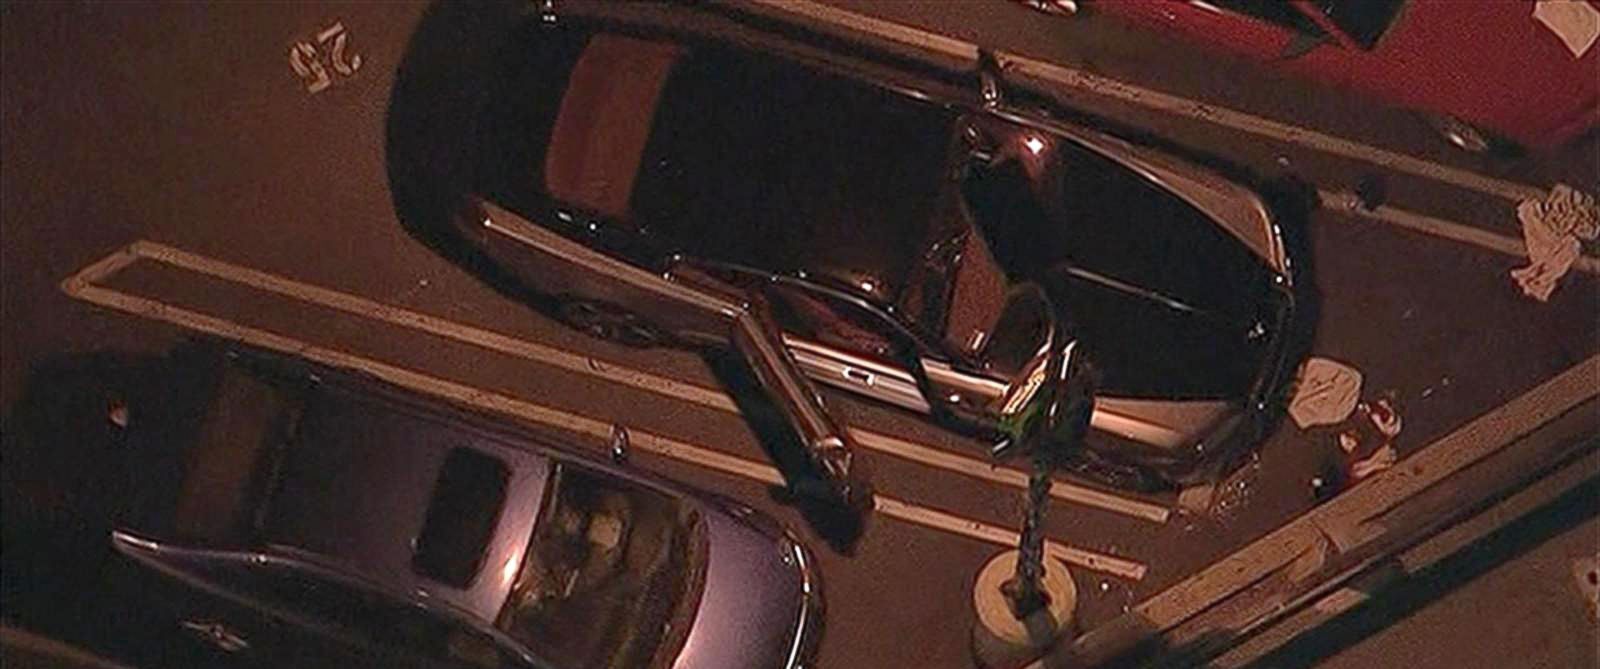 PHOTO: A man sitting inside his Rolls-Royce was shot twice by a gunman riding a bicycle in Hollywood, California, Jan. 16, 2015.